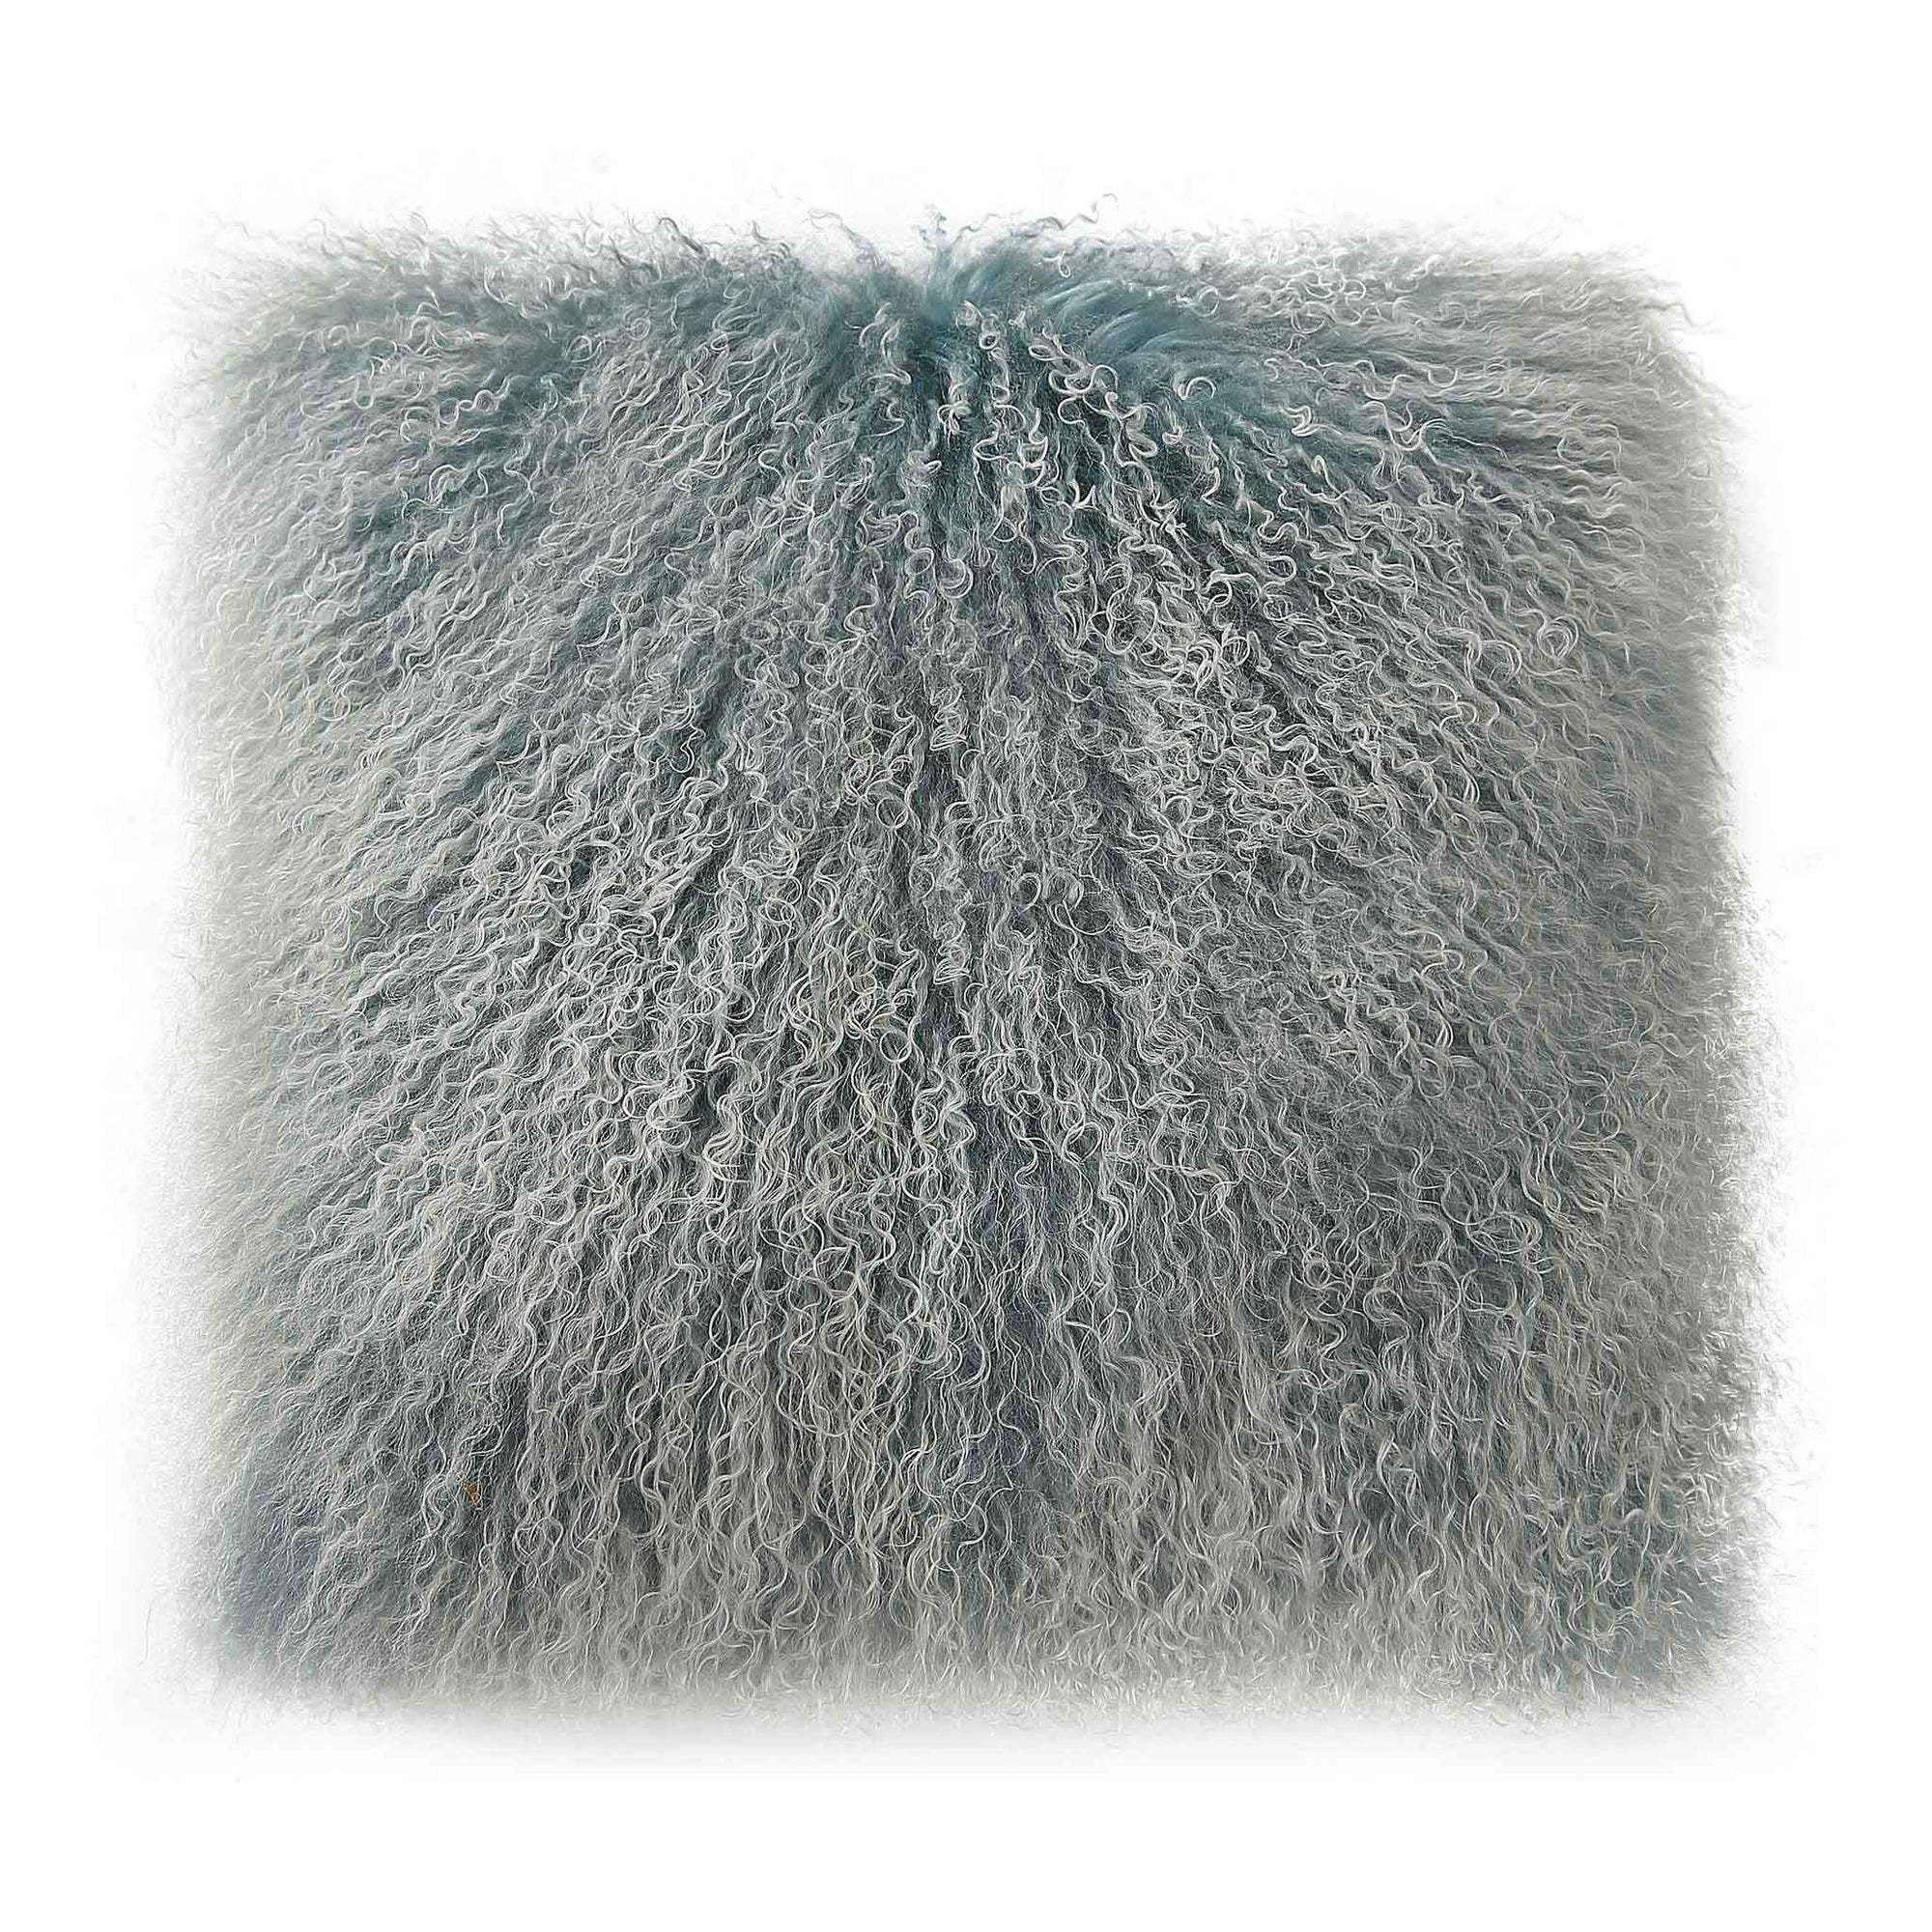 MOES-LAMB FUR PILLOW LARGE  SNOW-Pillows-MODTEMPO